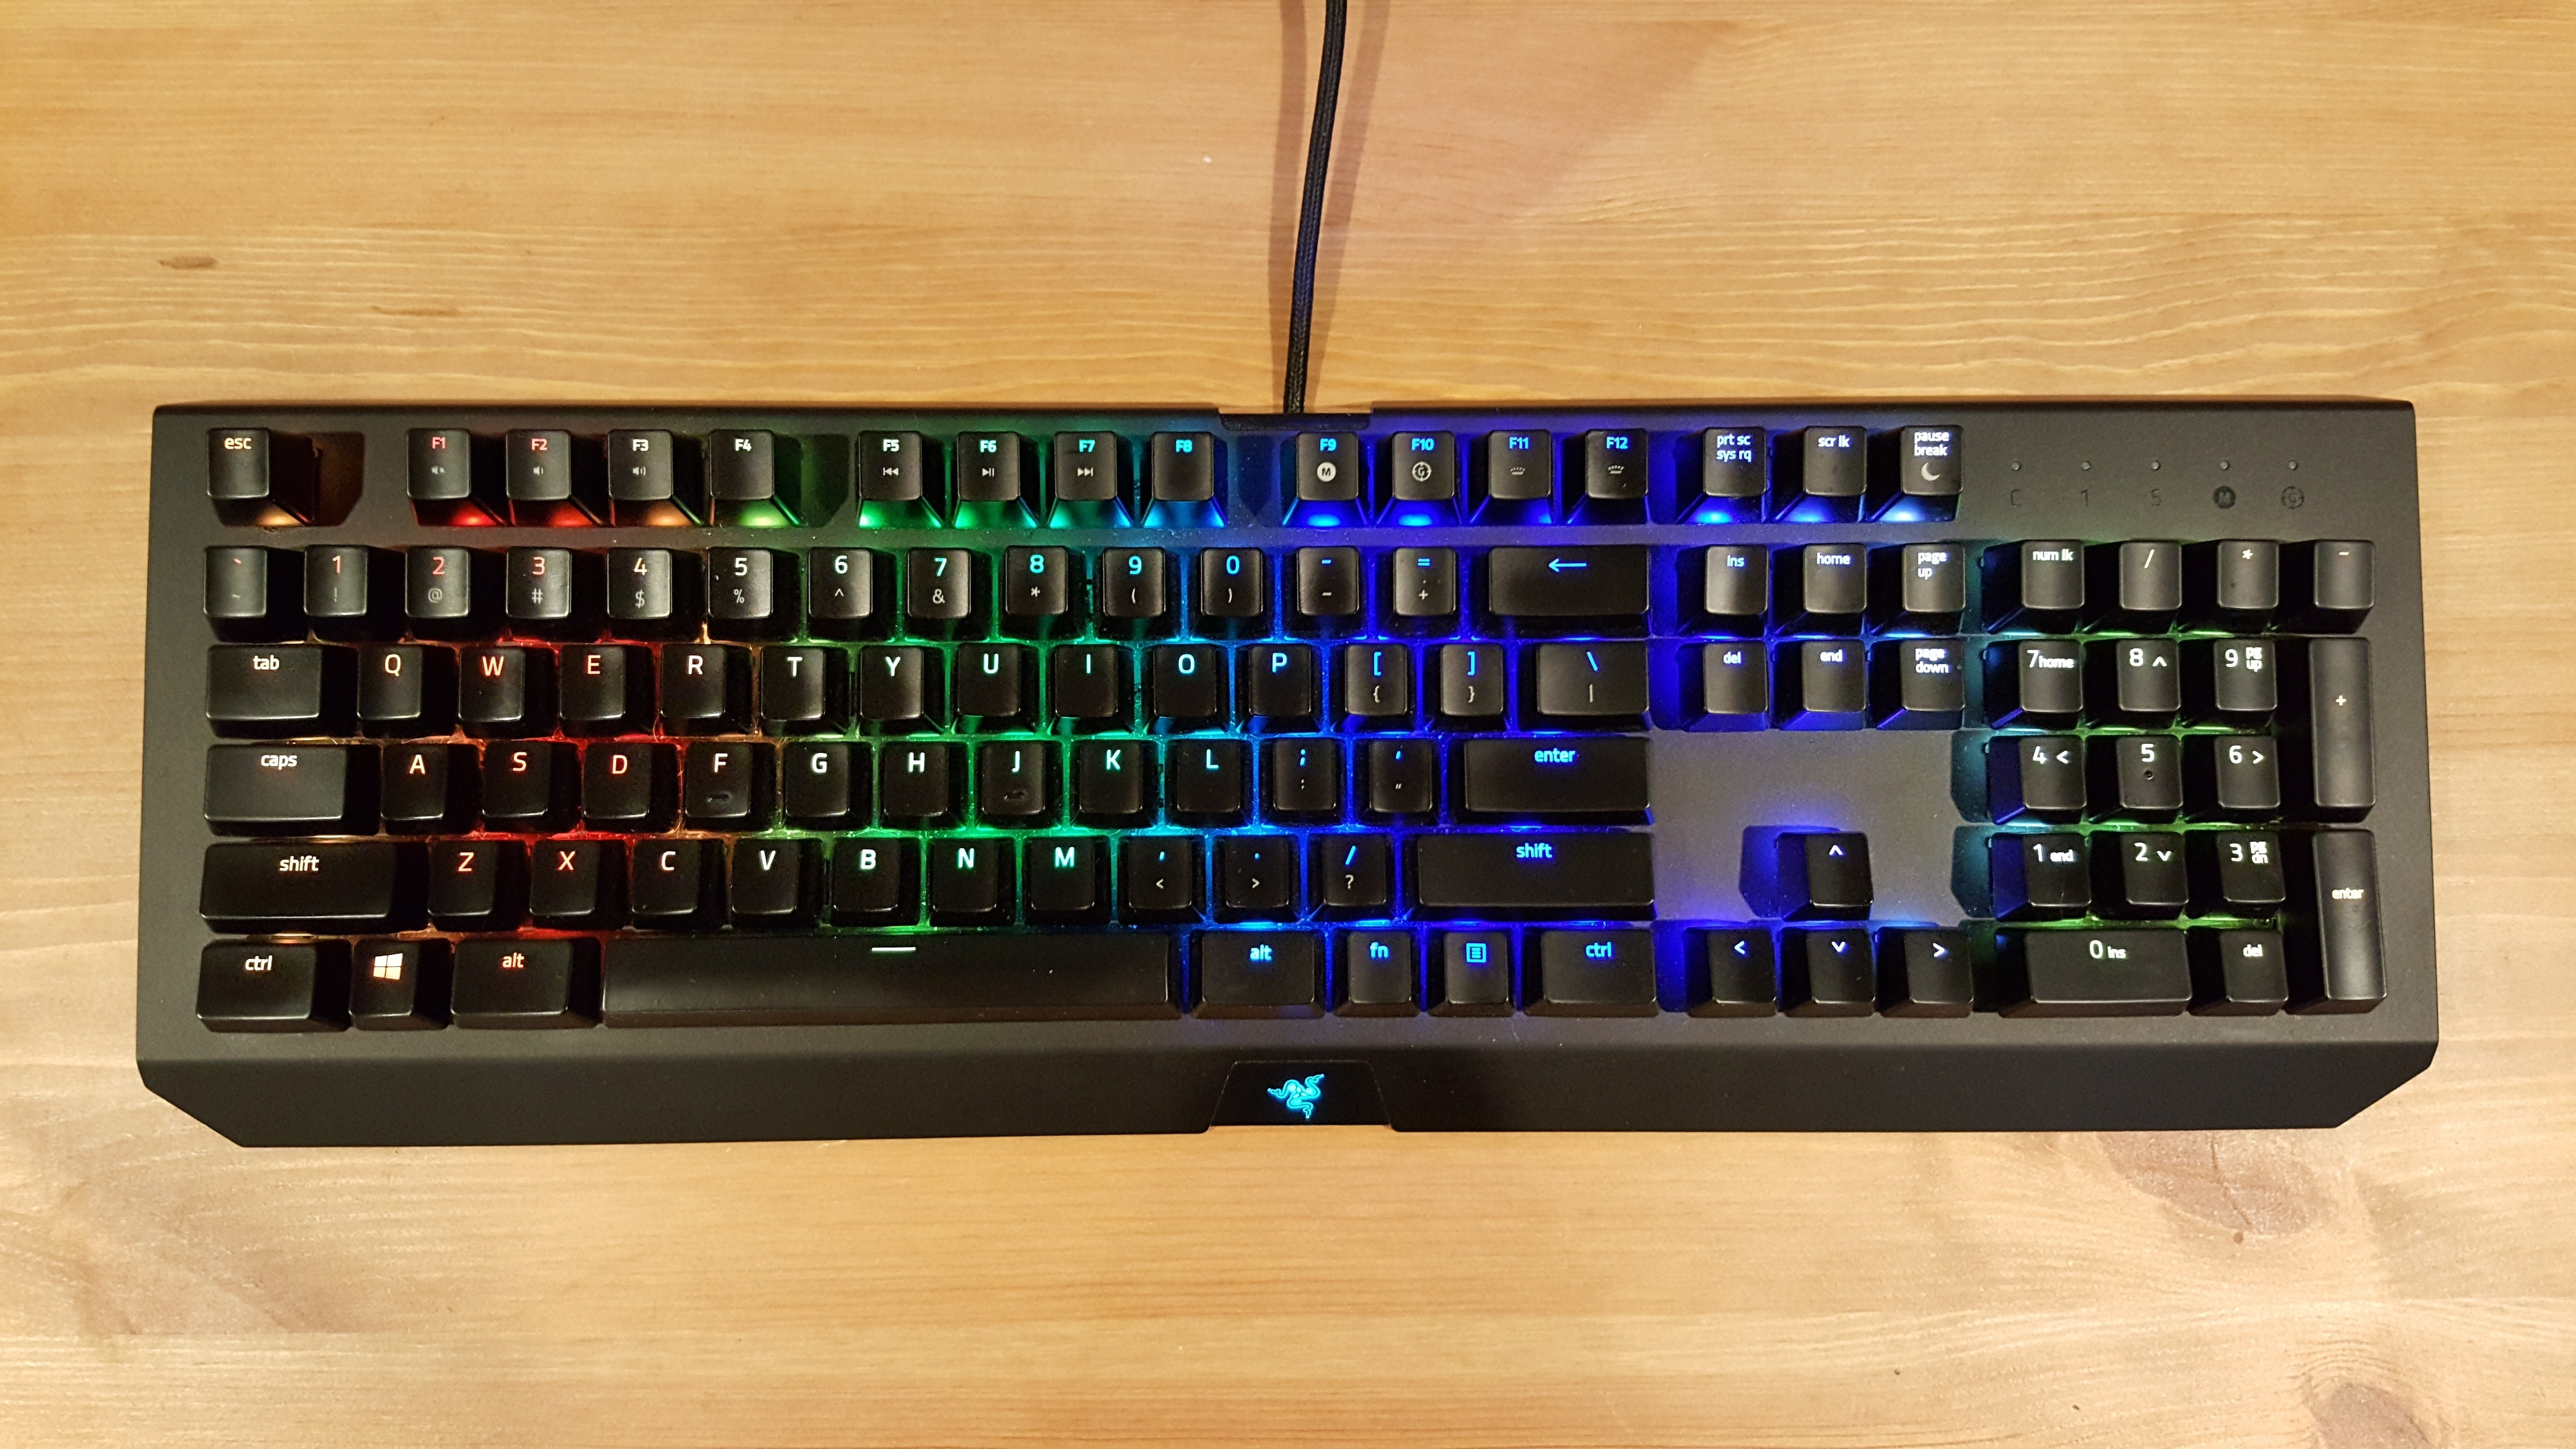 5958d0c158e Razer BlackWidow X Chroma review: A beautiful keyboard, but kind of a pain